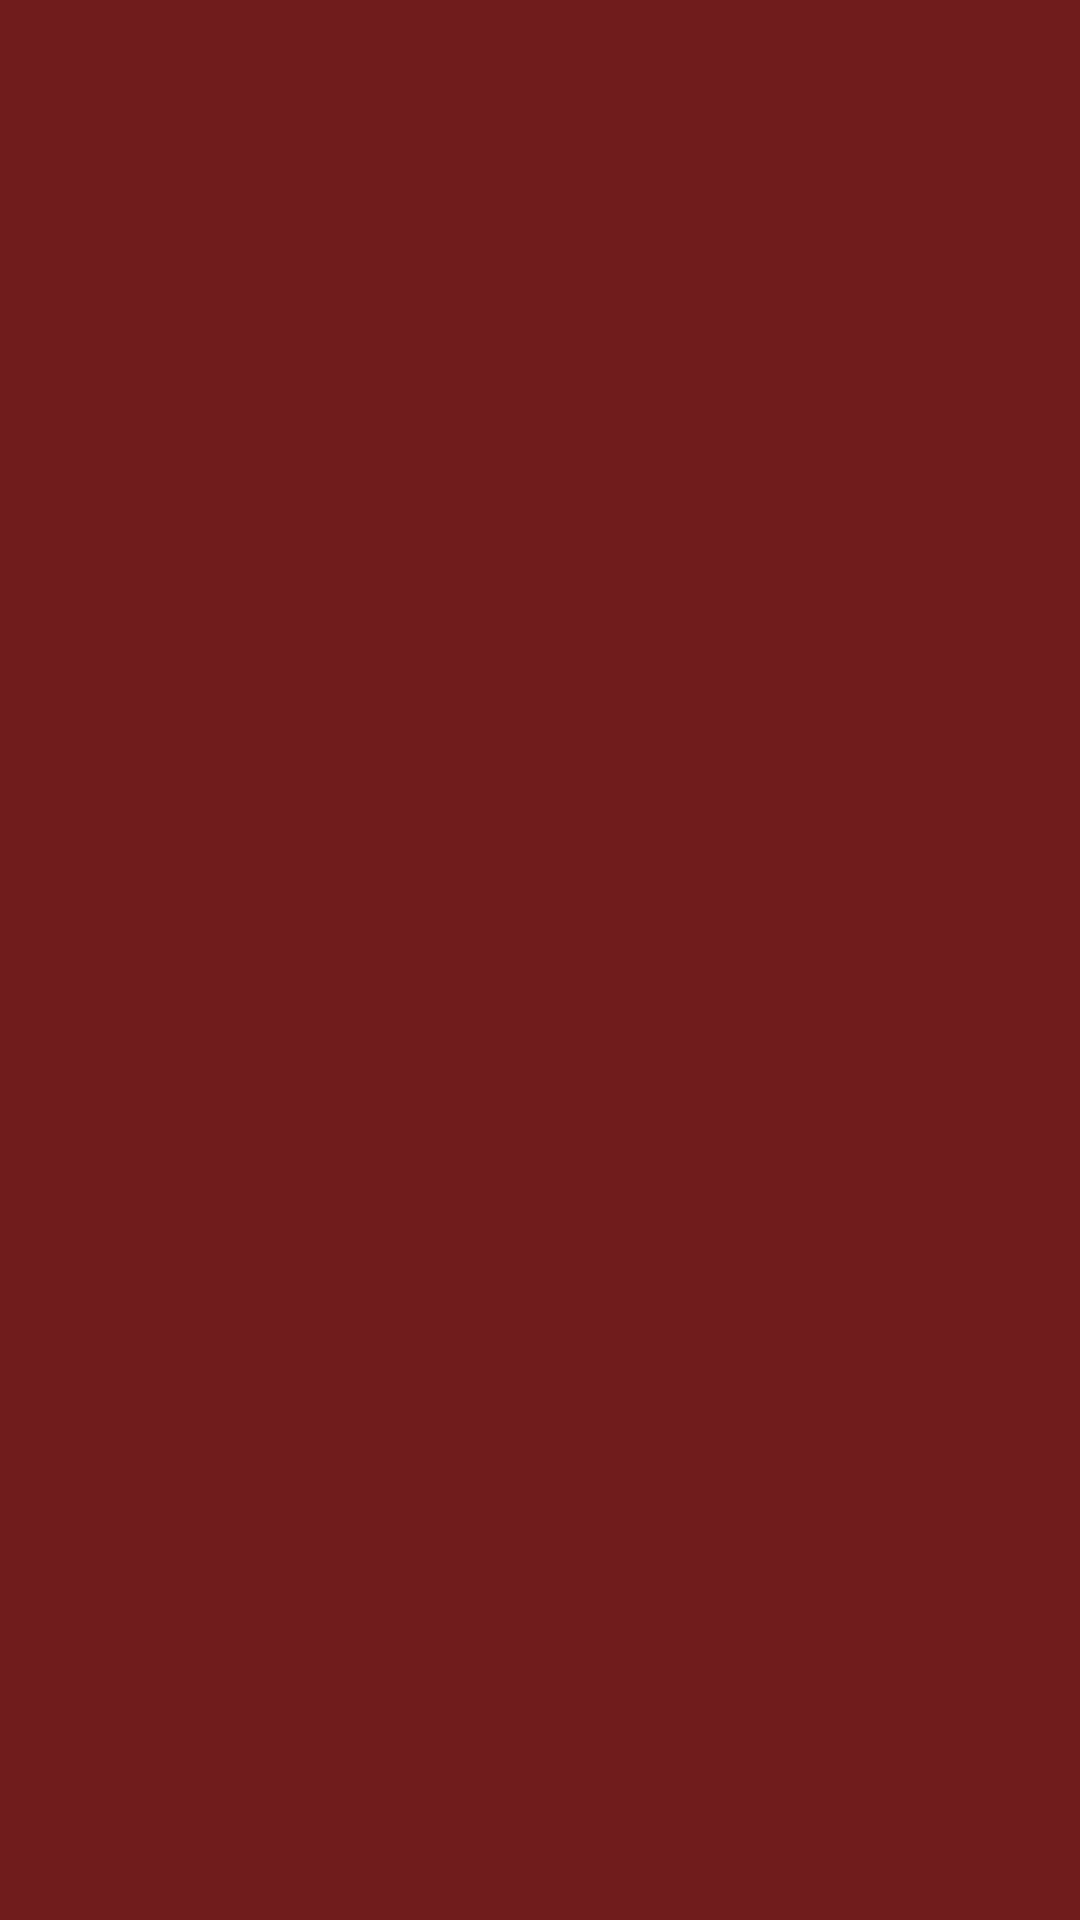 1080x1920 Prune Solid Color Background